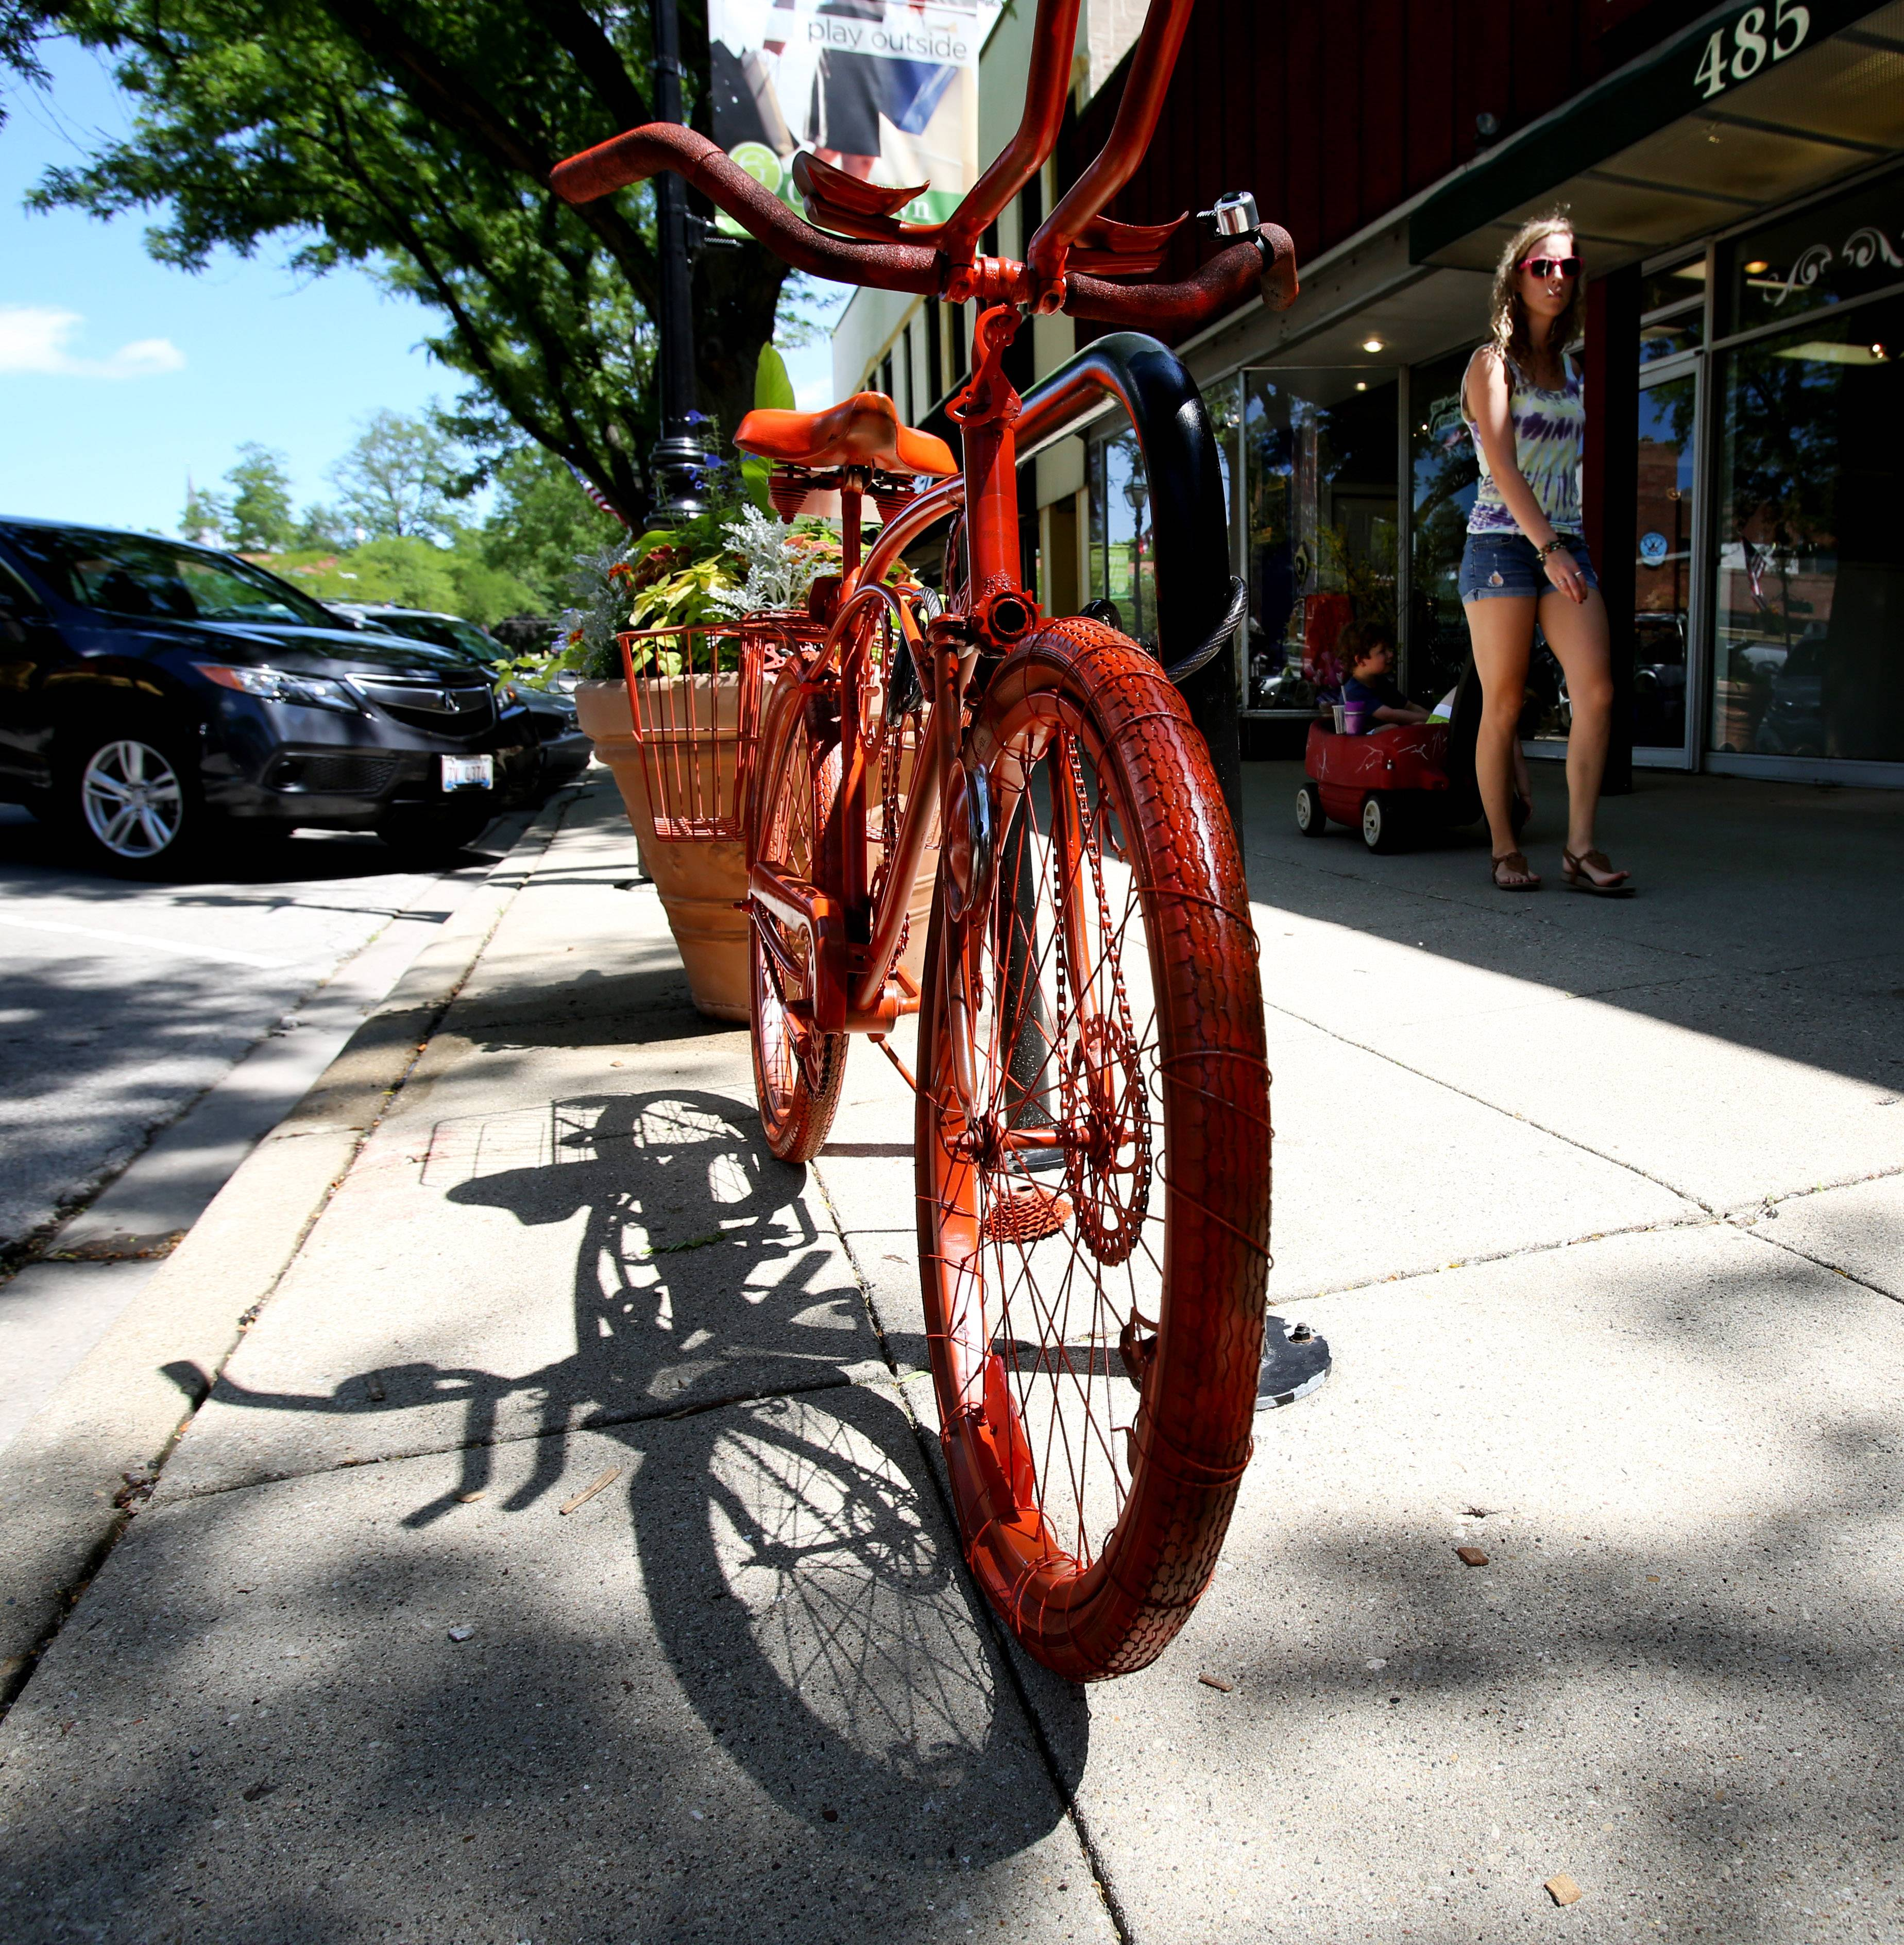 A new public art exhibit celebrating biking is on display for the next month in Glen Ellyn.